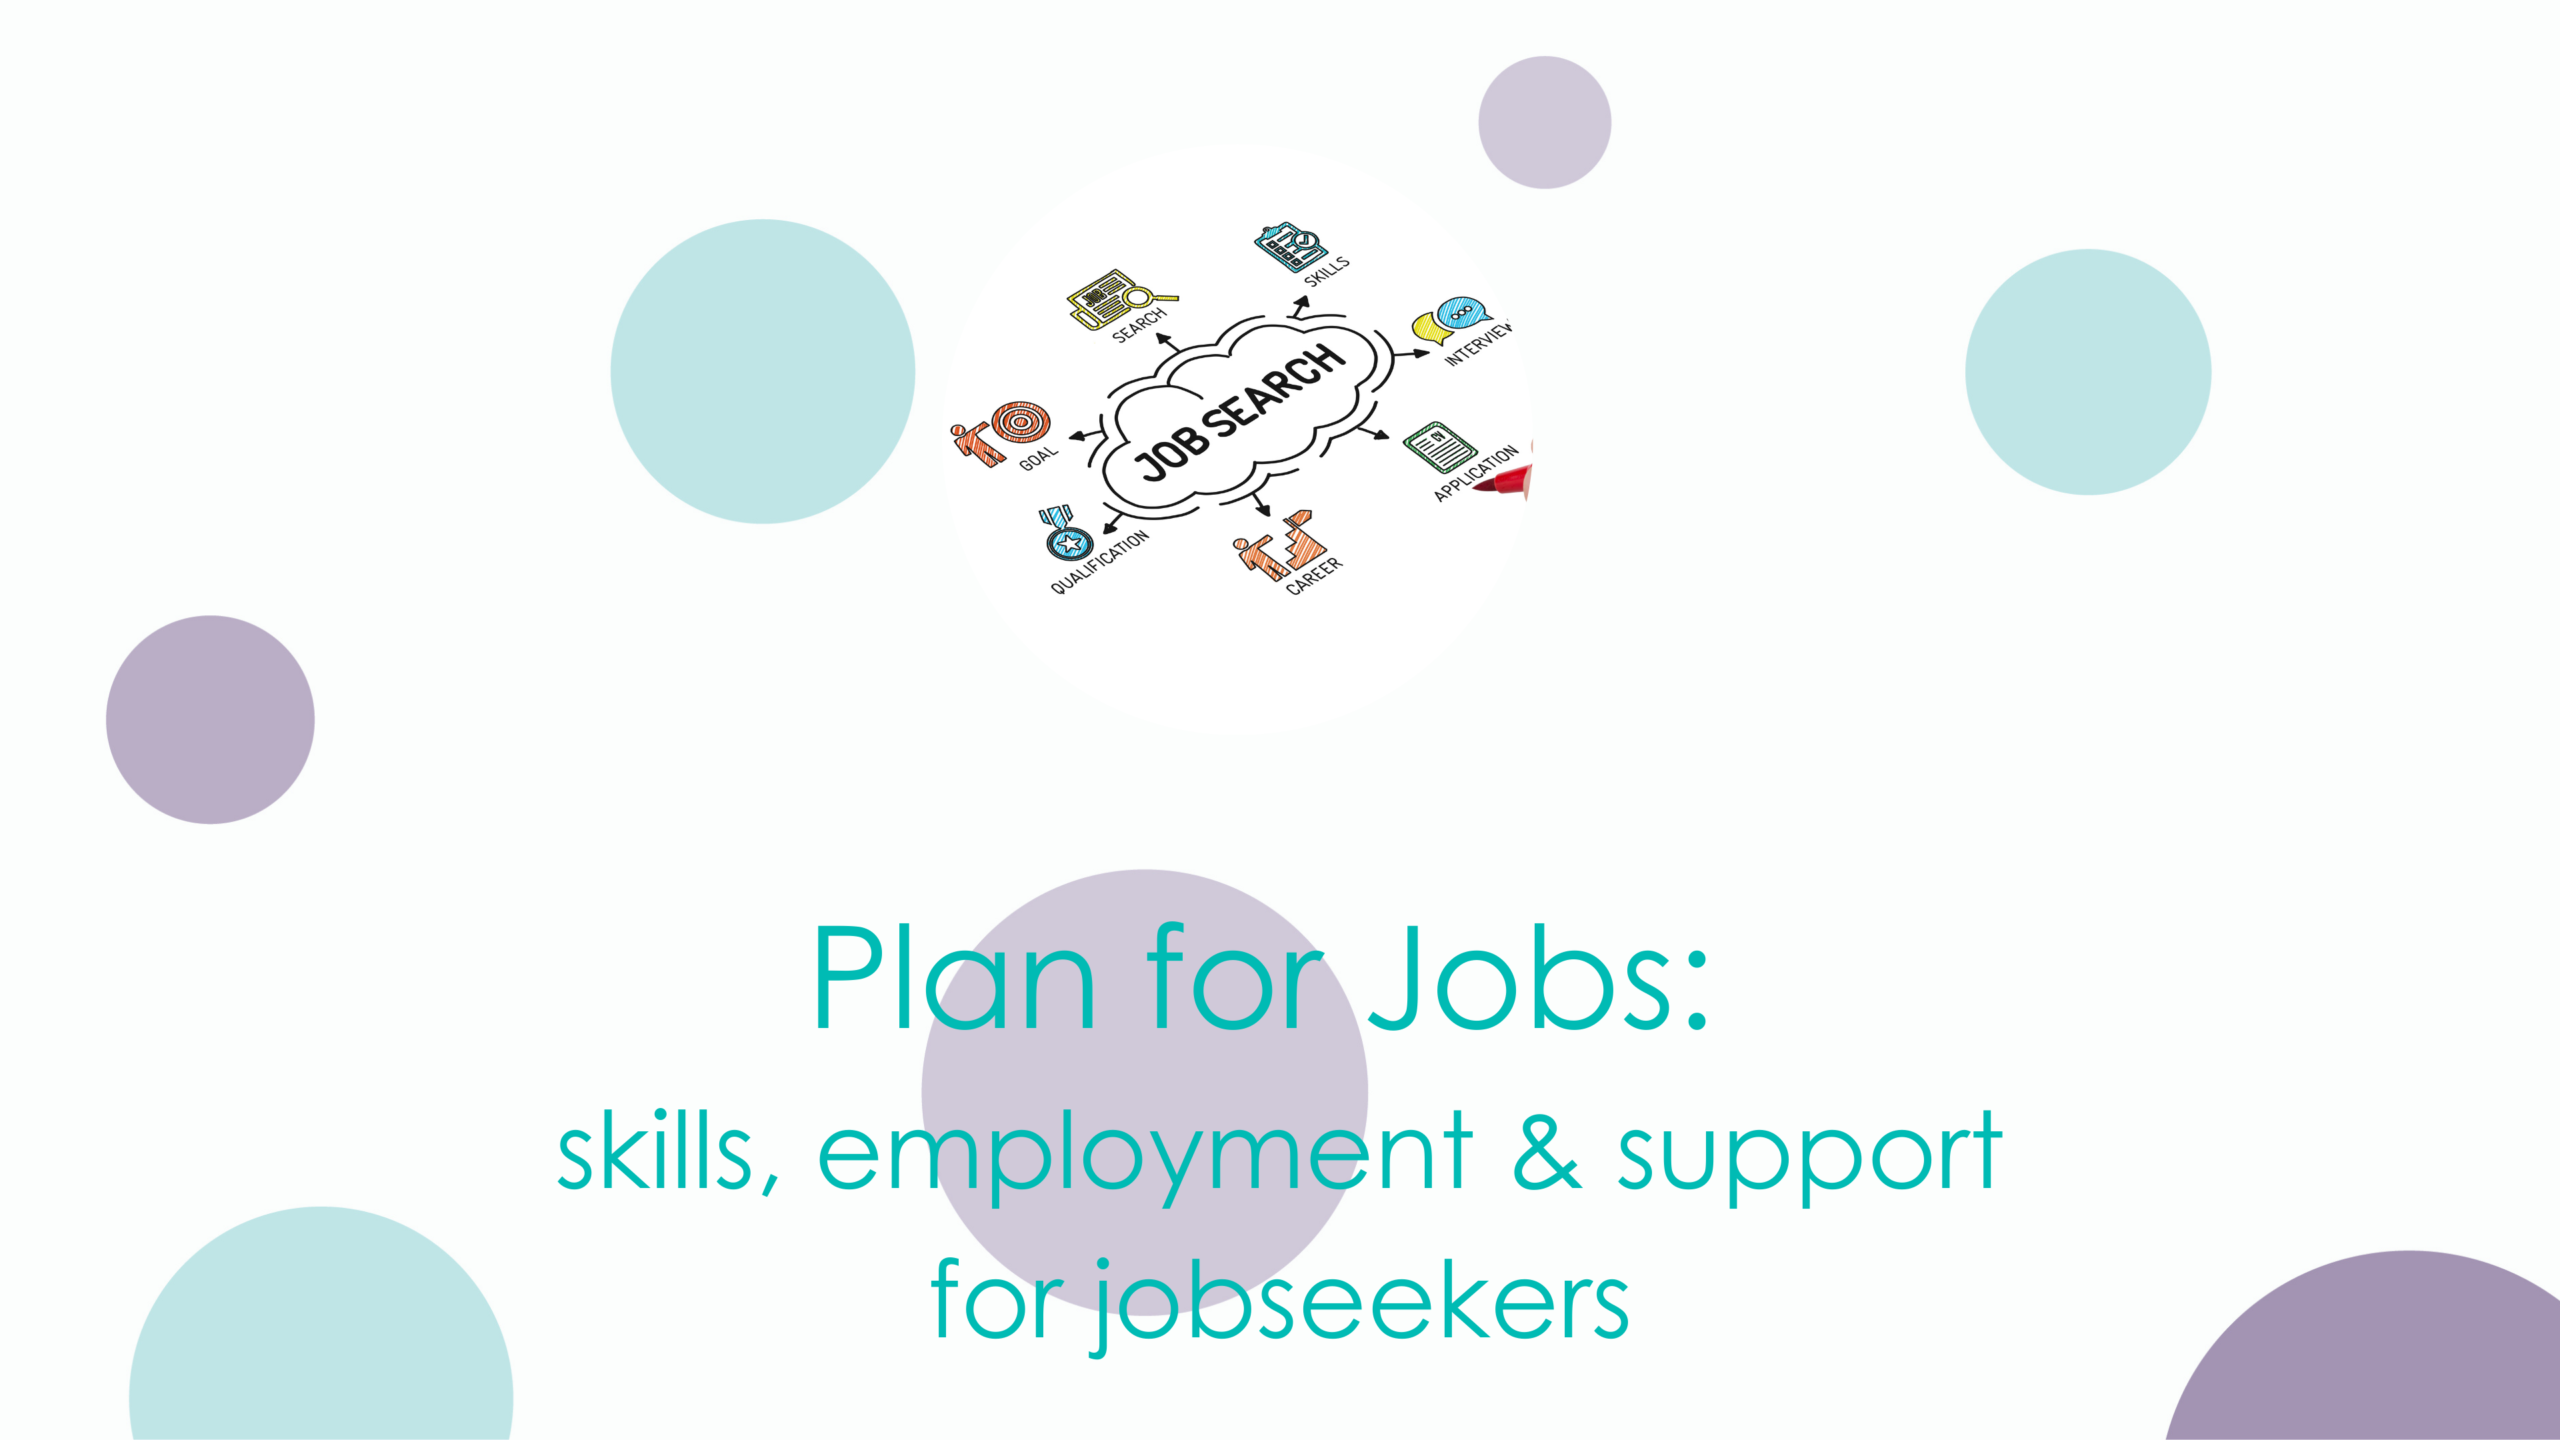 Plan for Jobs: skills, employment and support programmes for jobseekers.